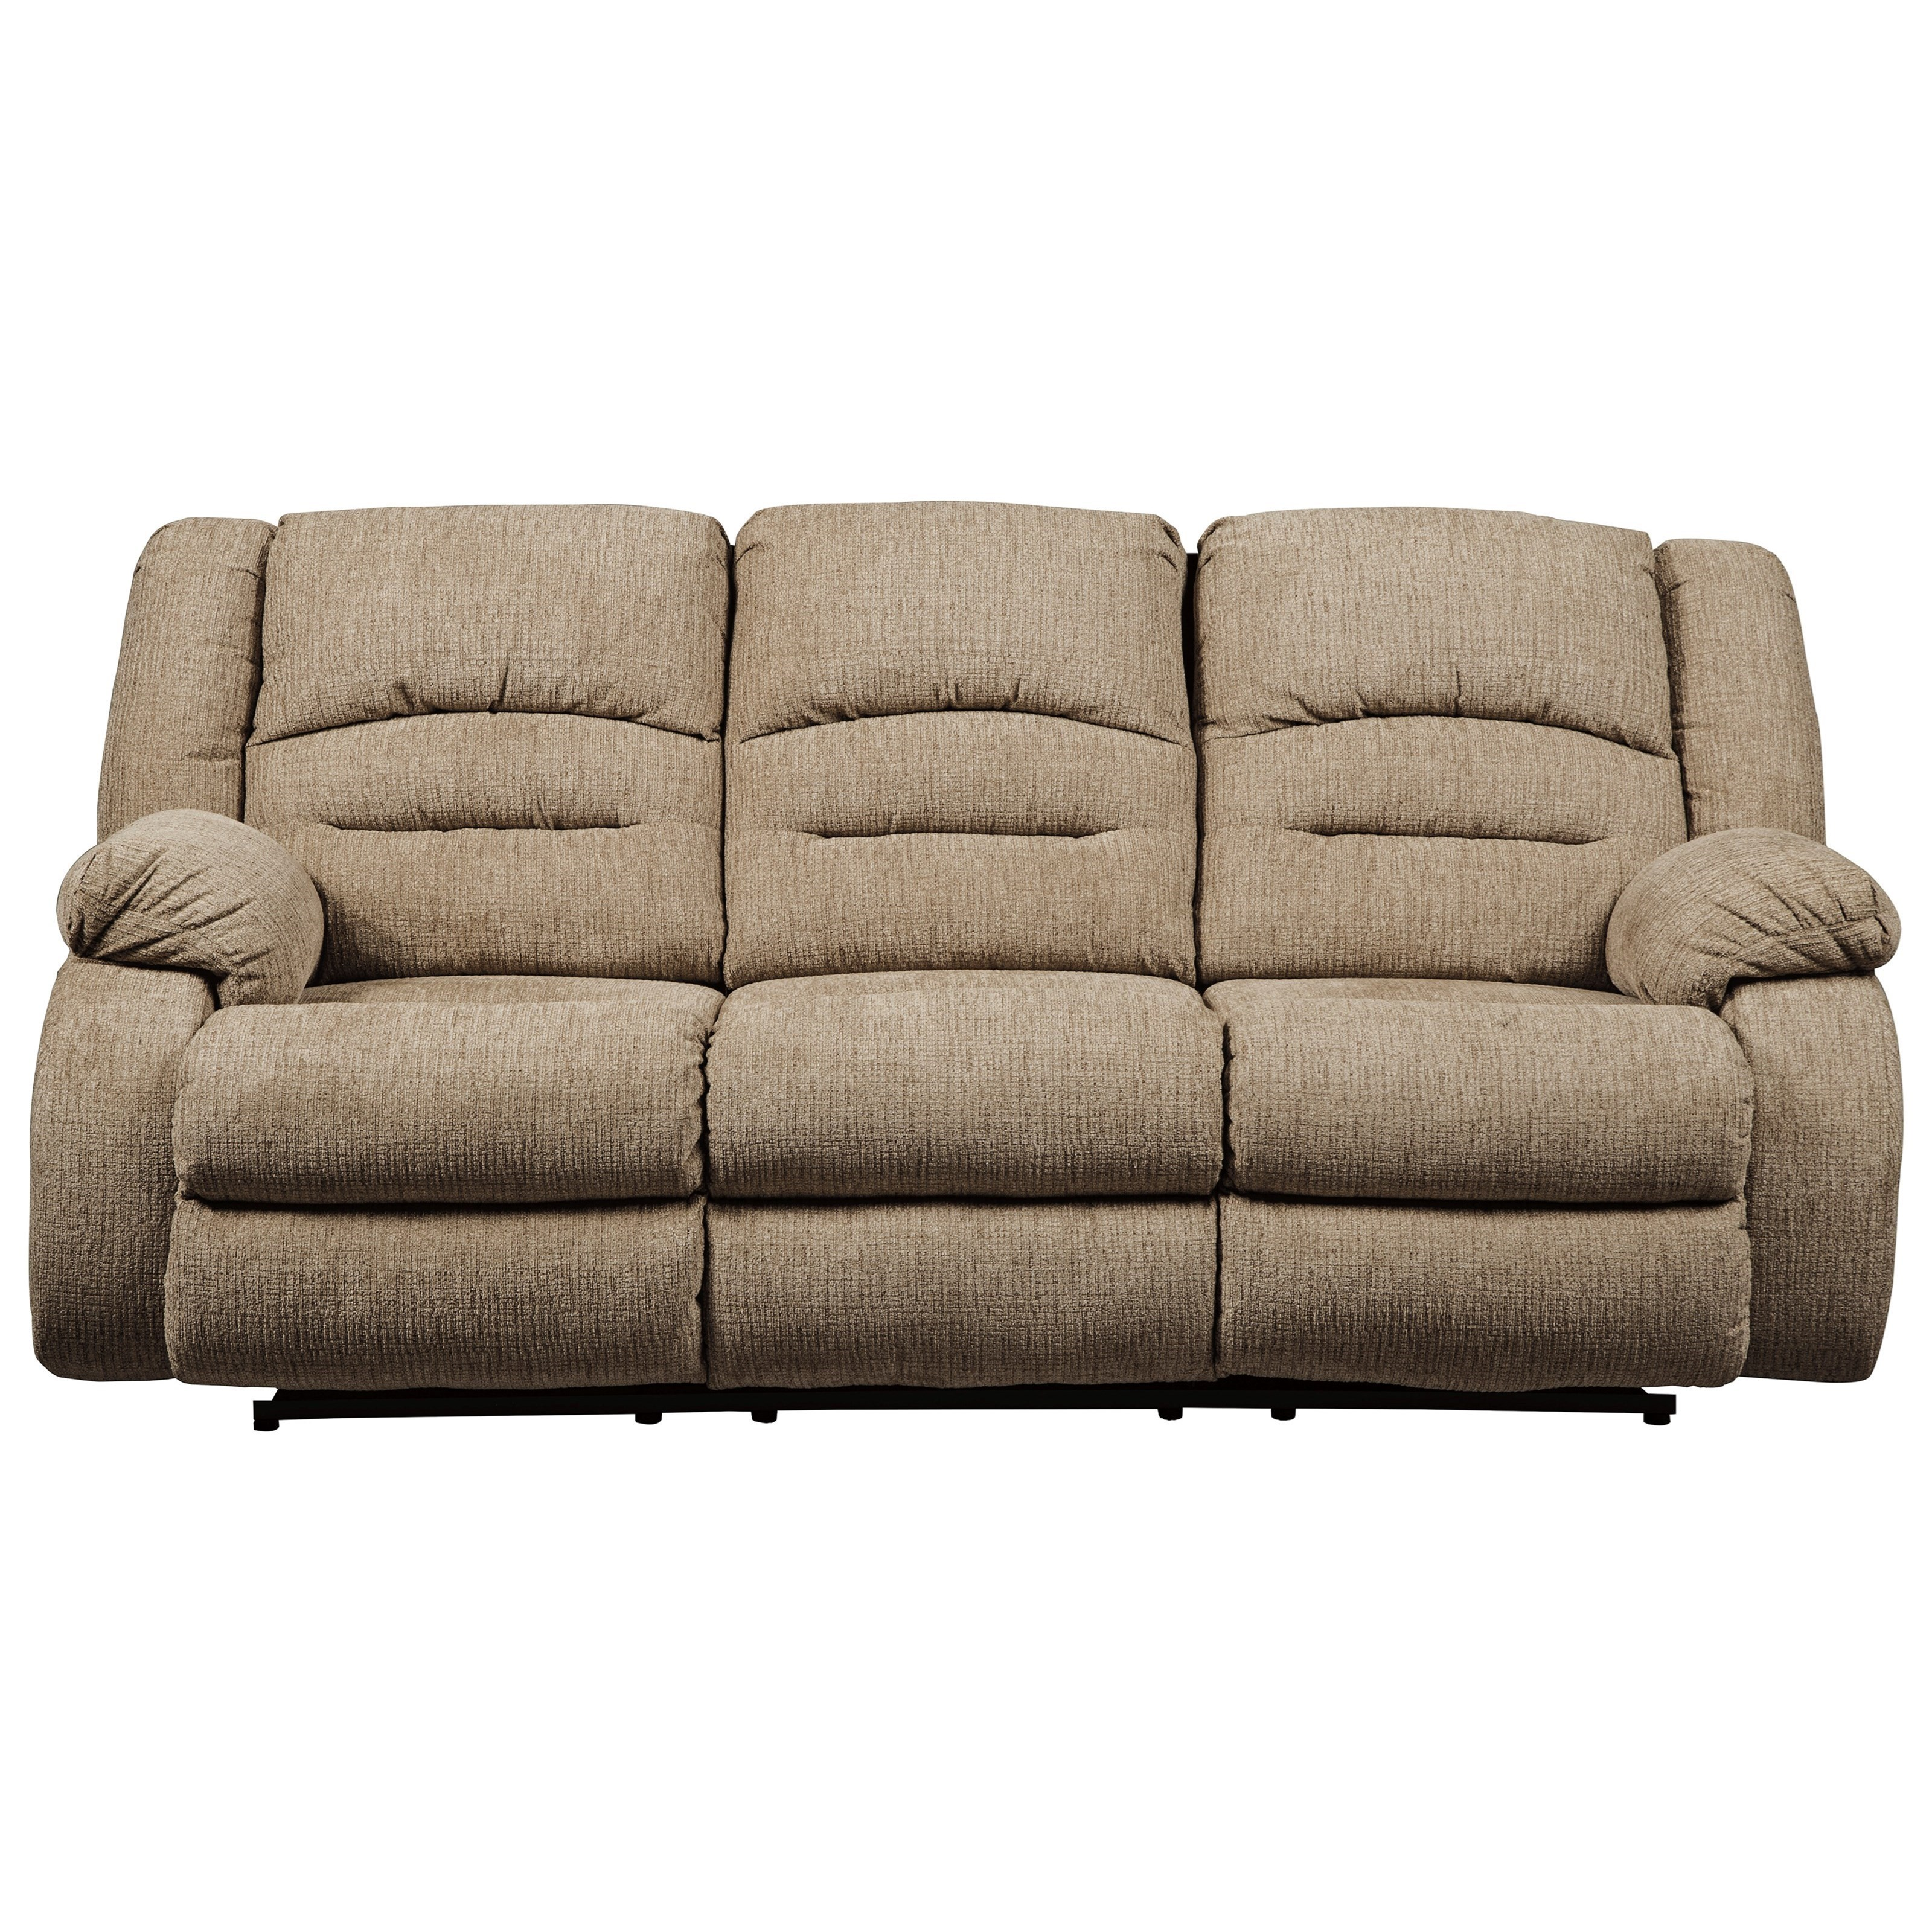 Signature Design By Ashley Labarre Power Reclining Sofa With Adjustable  Headrest | Royal Furniture | Reclining Sofas